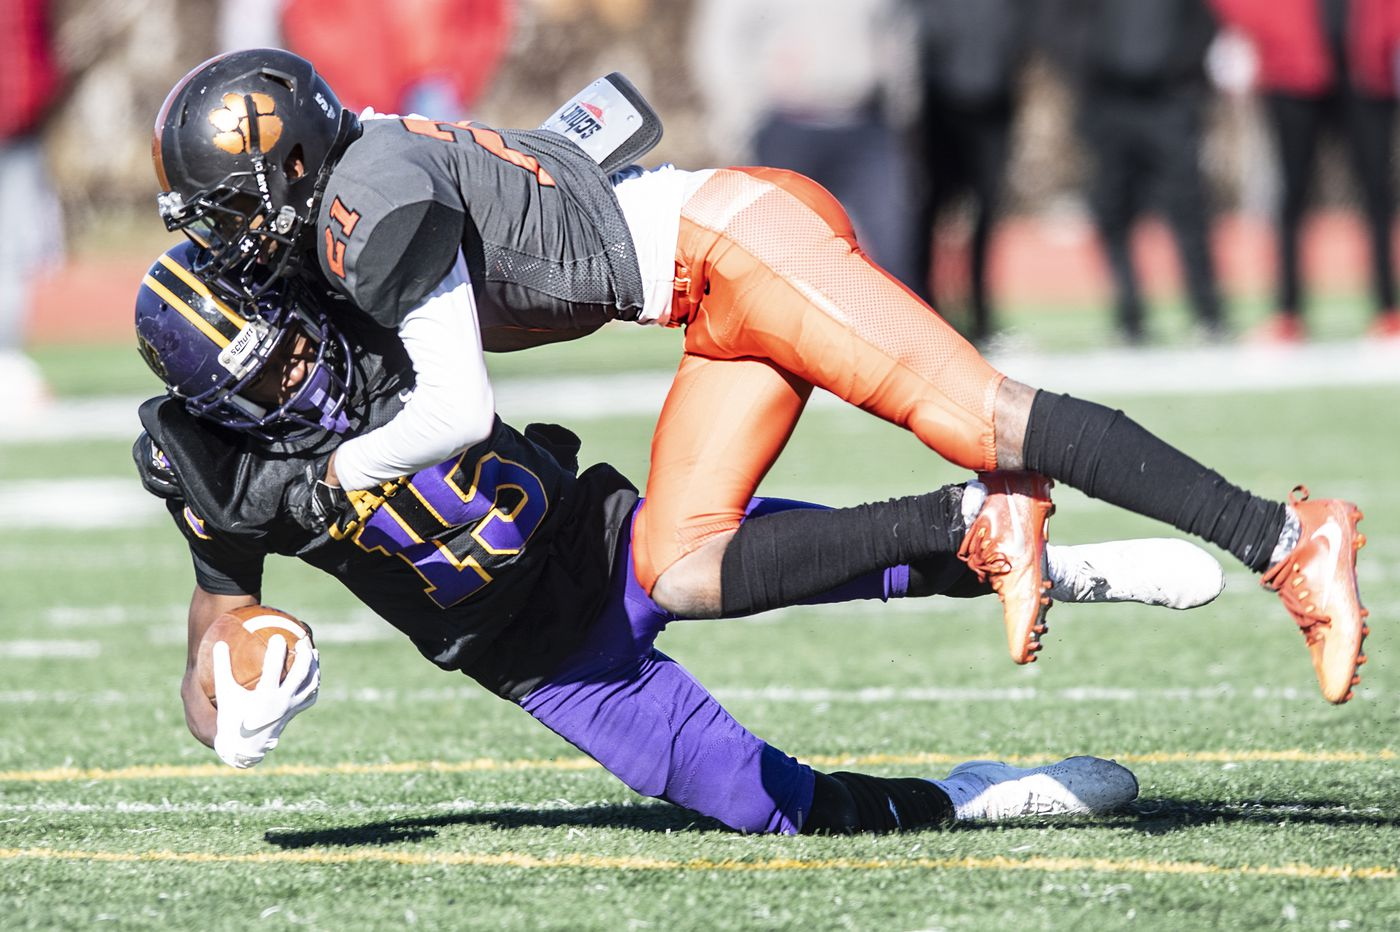 NJSIAA drastically reduces full-contact football practices in effort to increase player safety